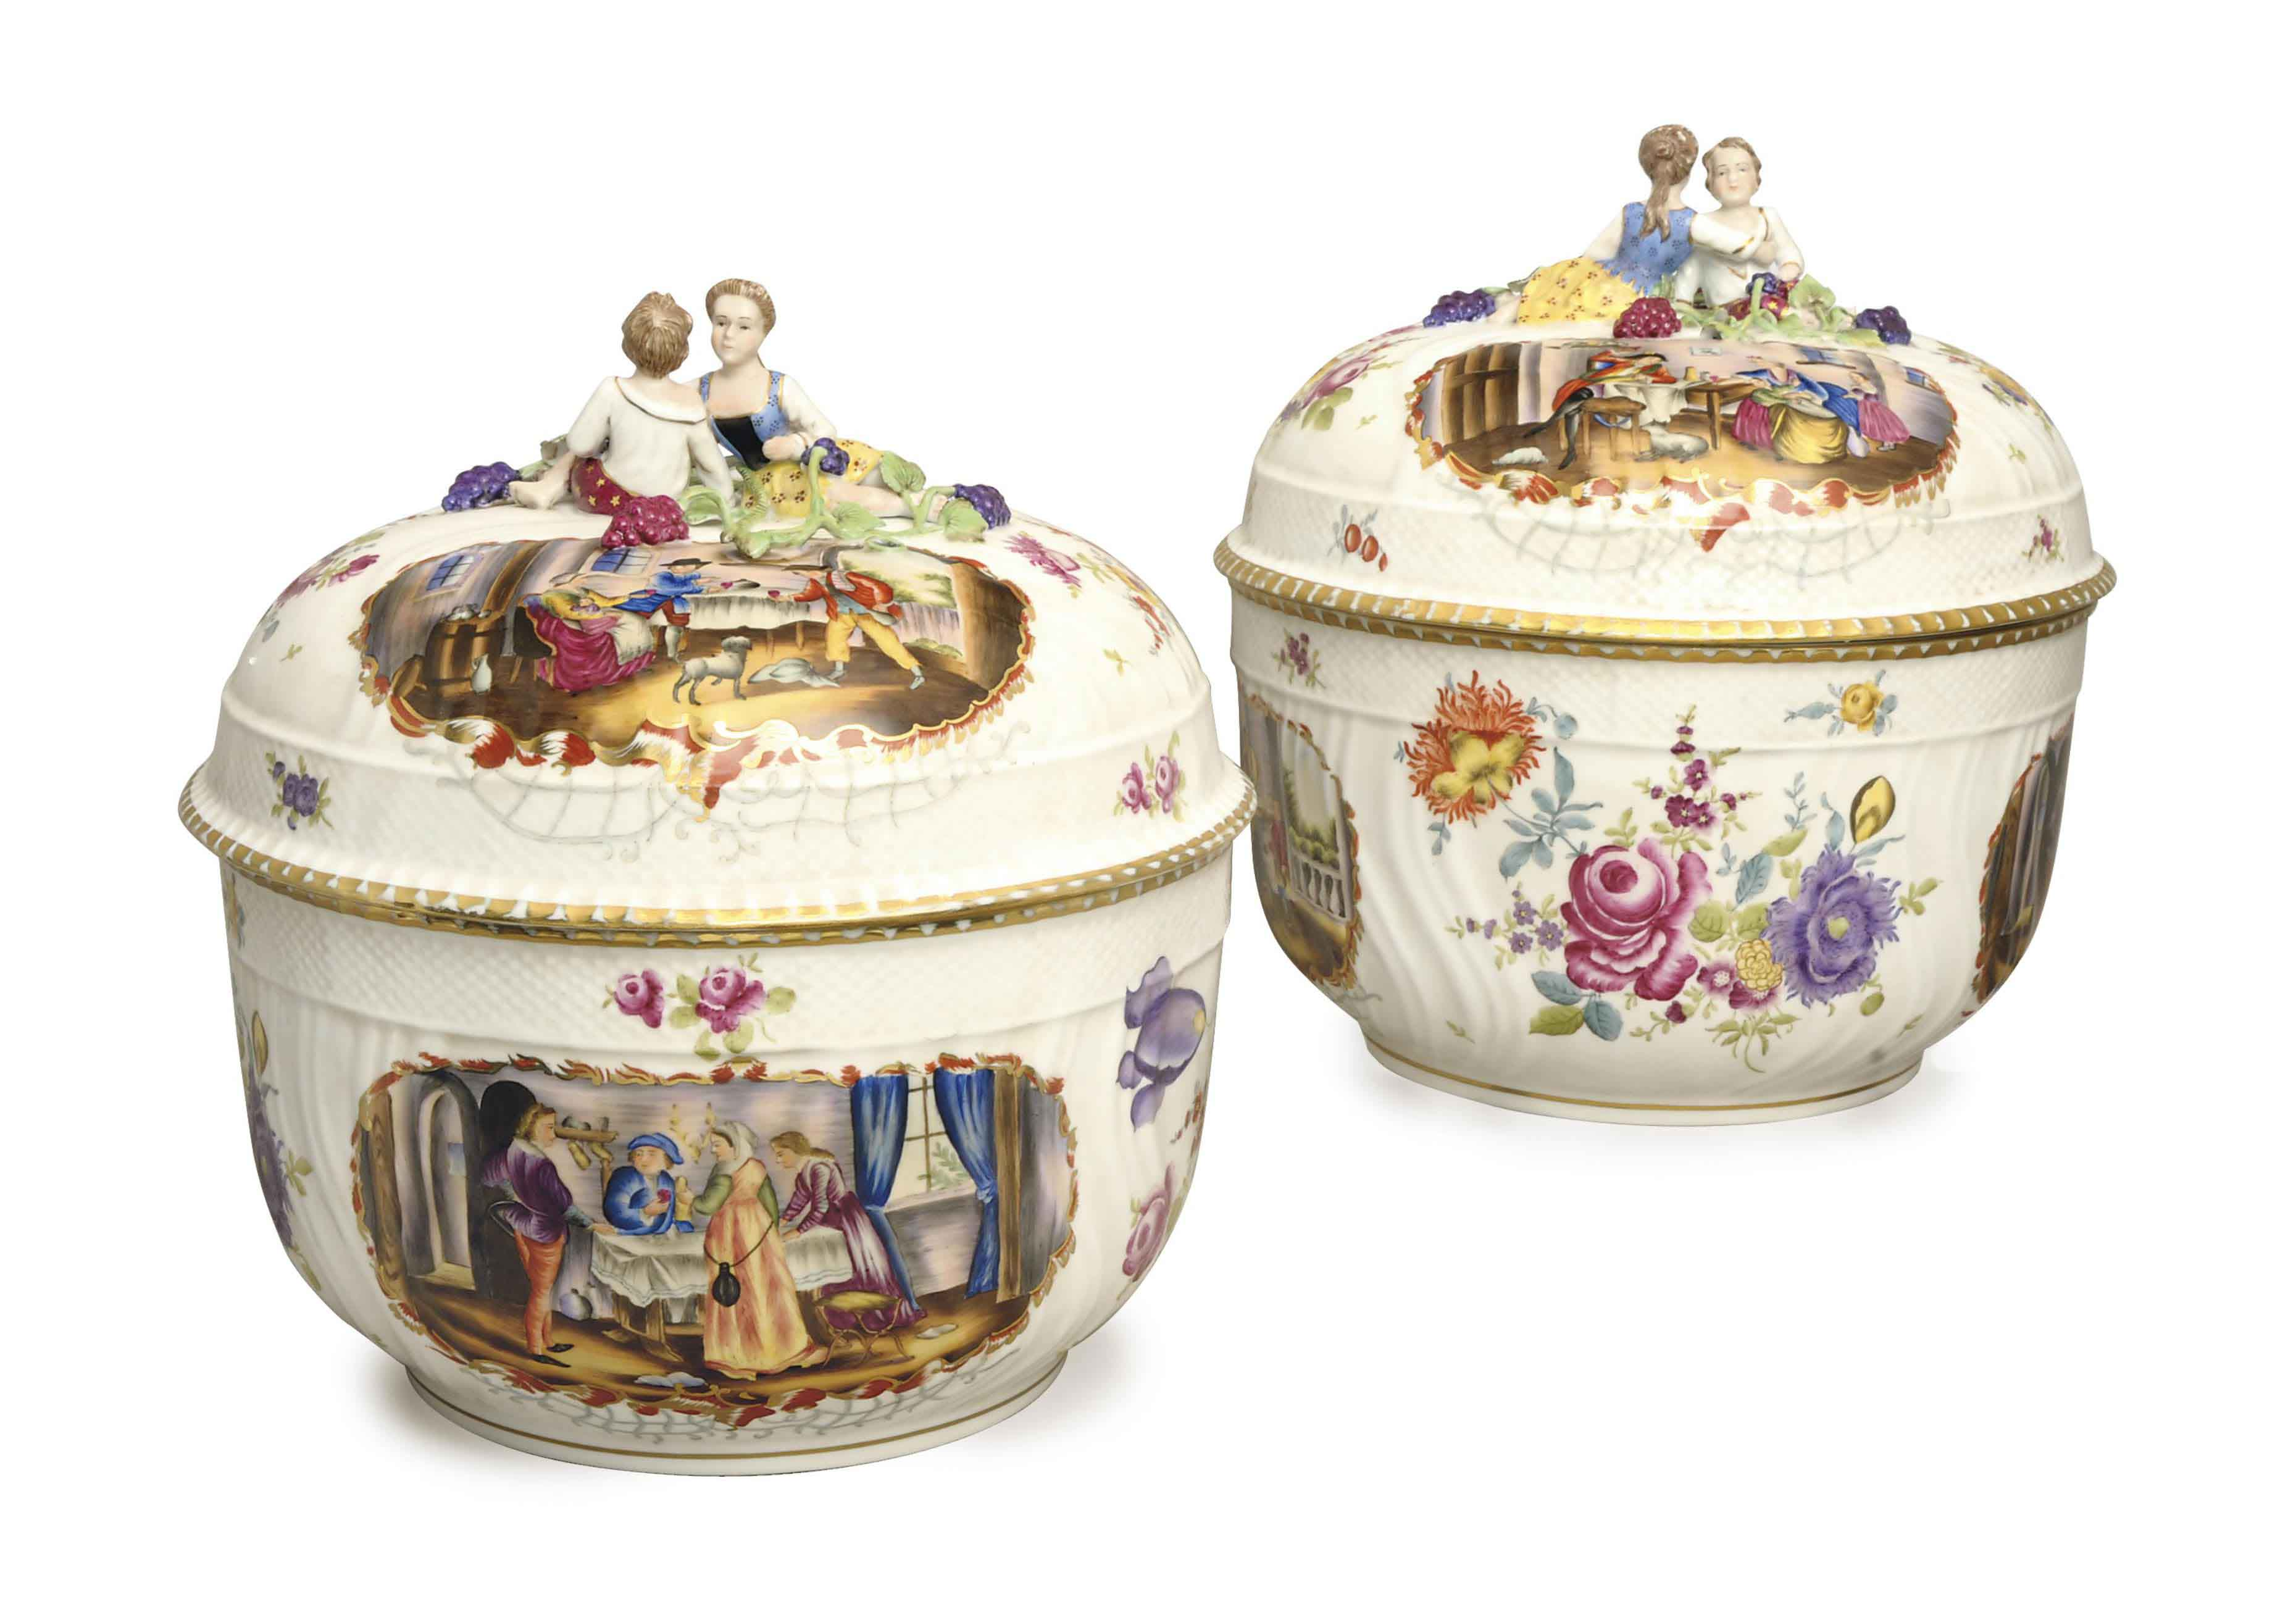 A PAIR OF SEVRES-STYLE PORCELAIN PUNCH BOWLS AND COVERS,